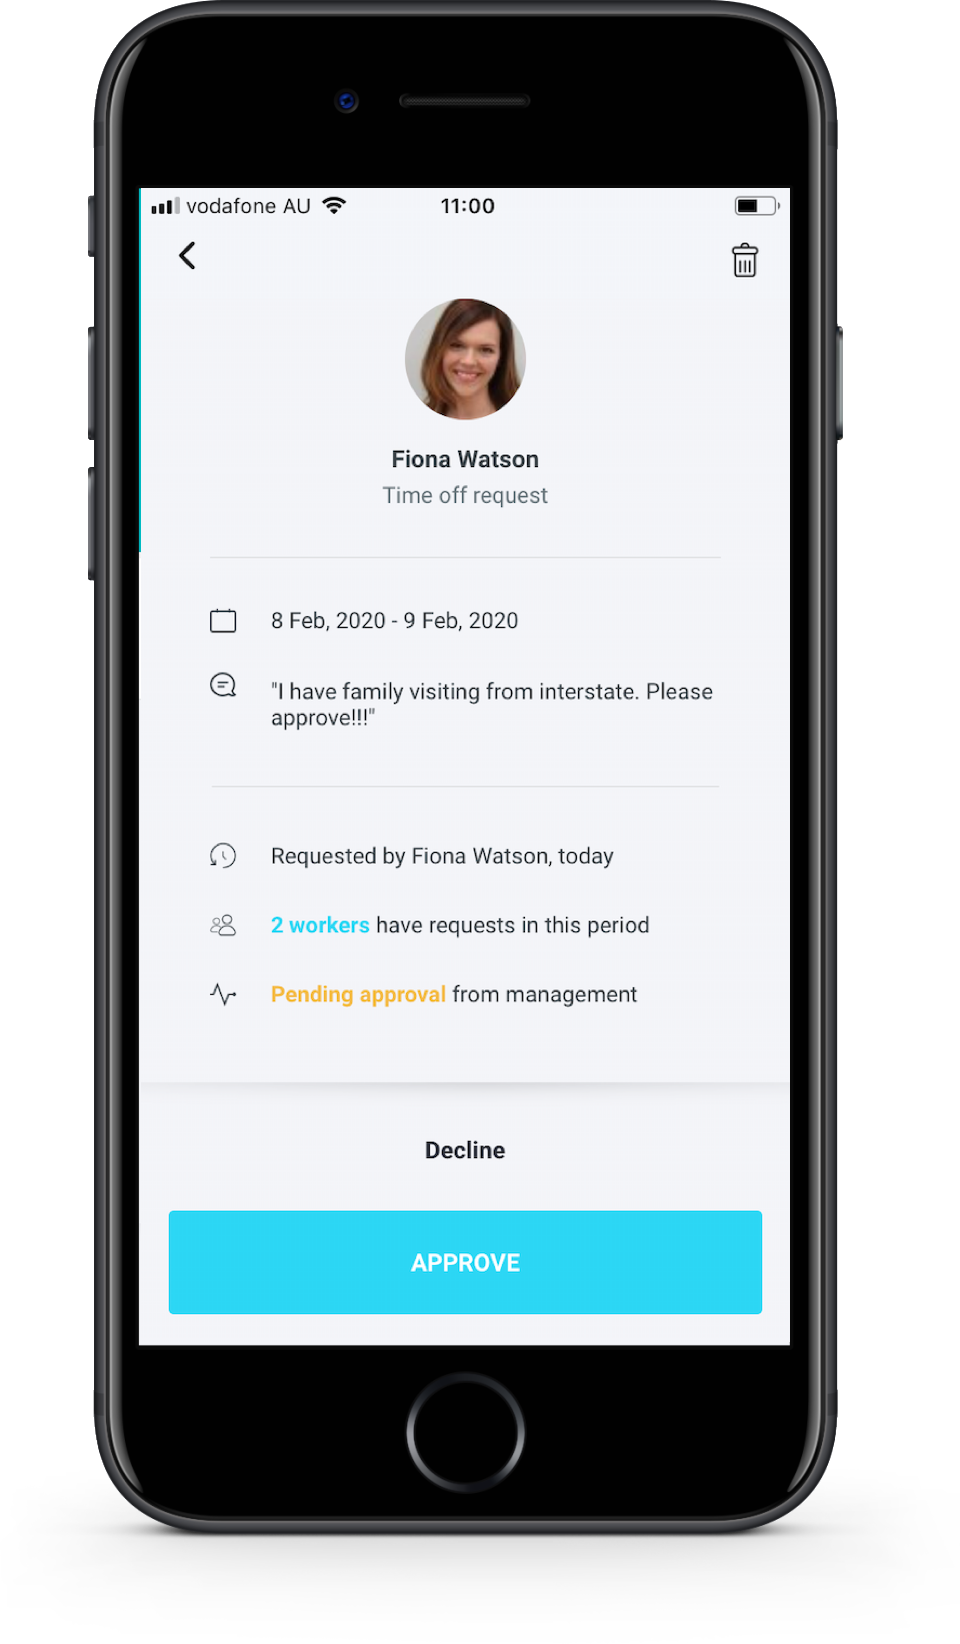 SocialSchedules Software - Free mobile apps for workers and managers